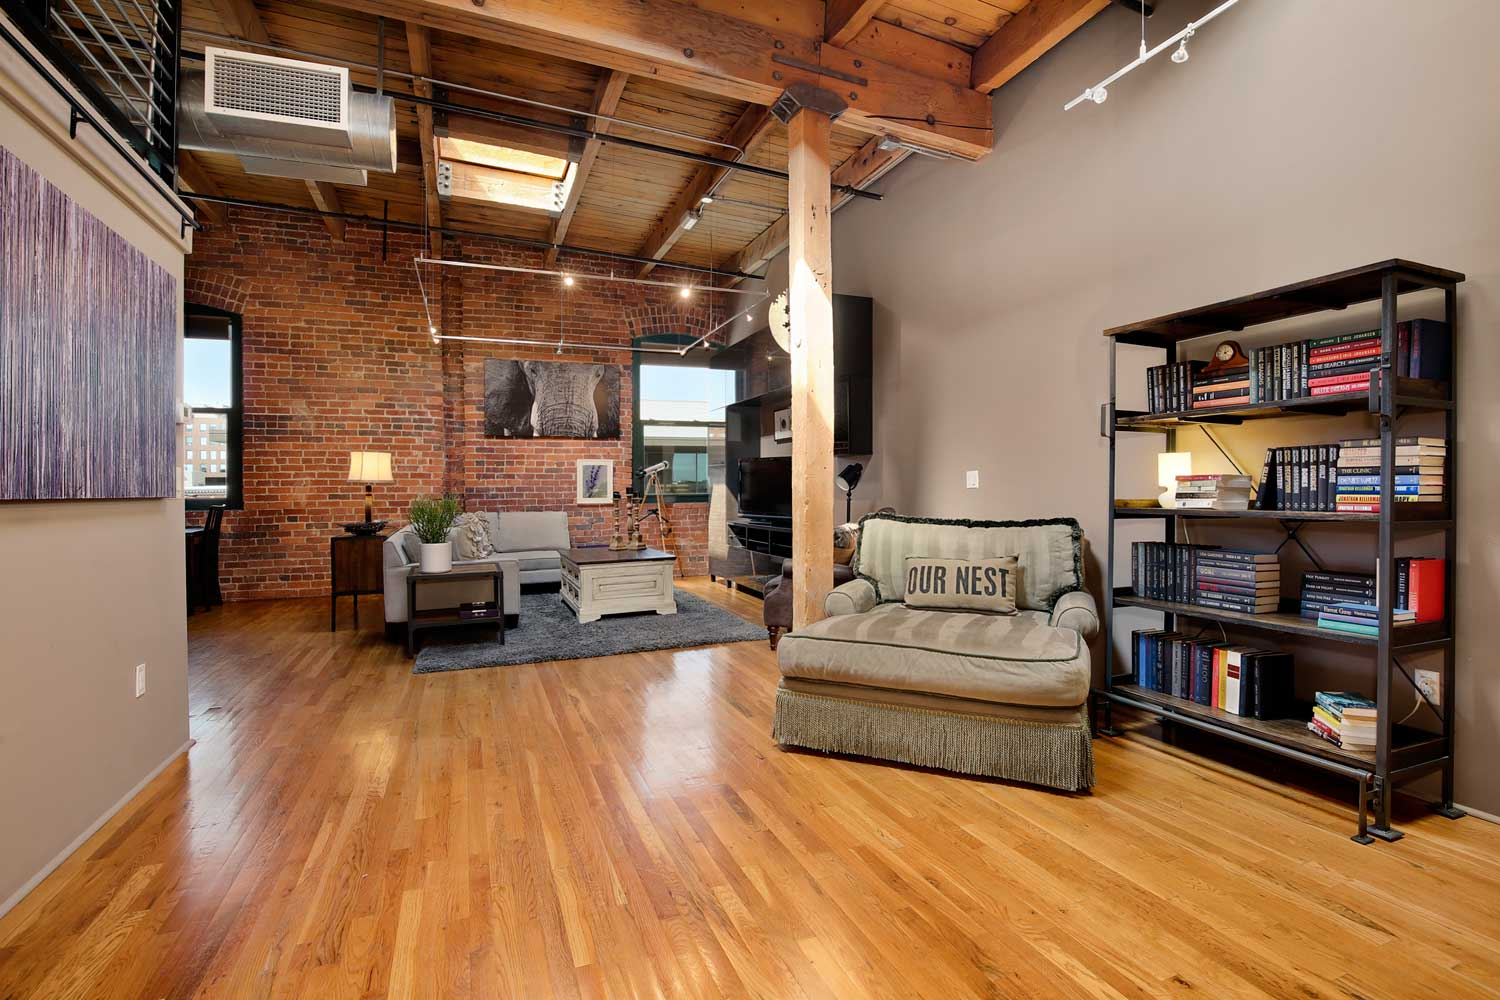 Denver lofts for sale at the historic Ice House